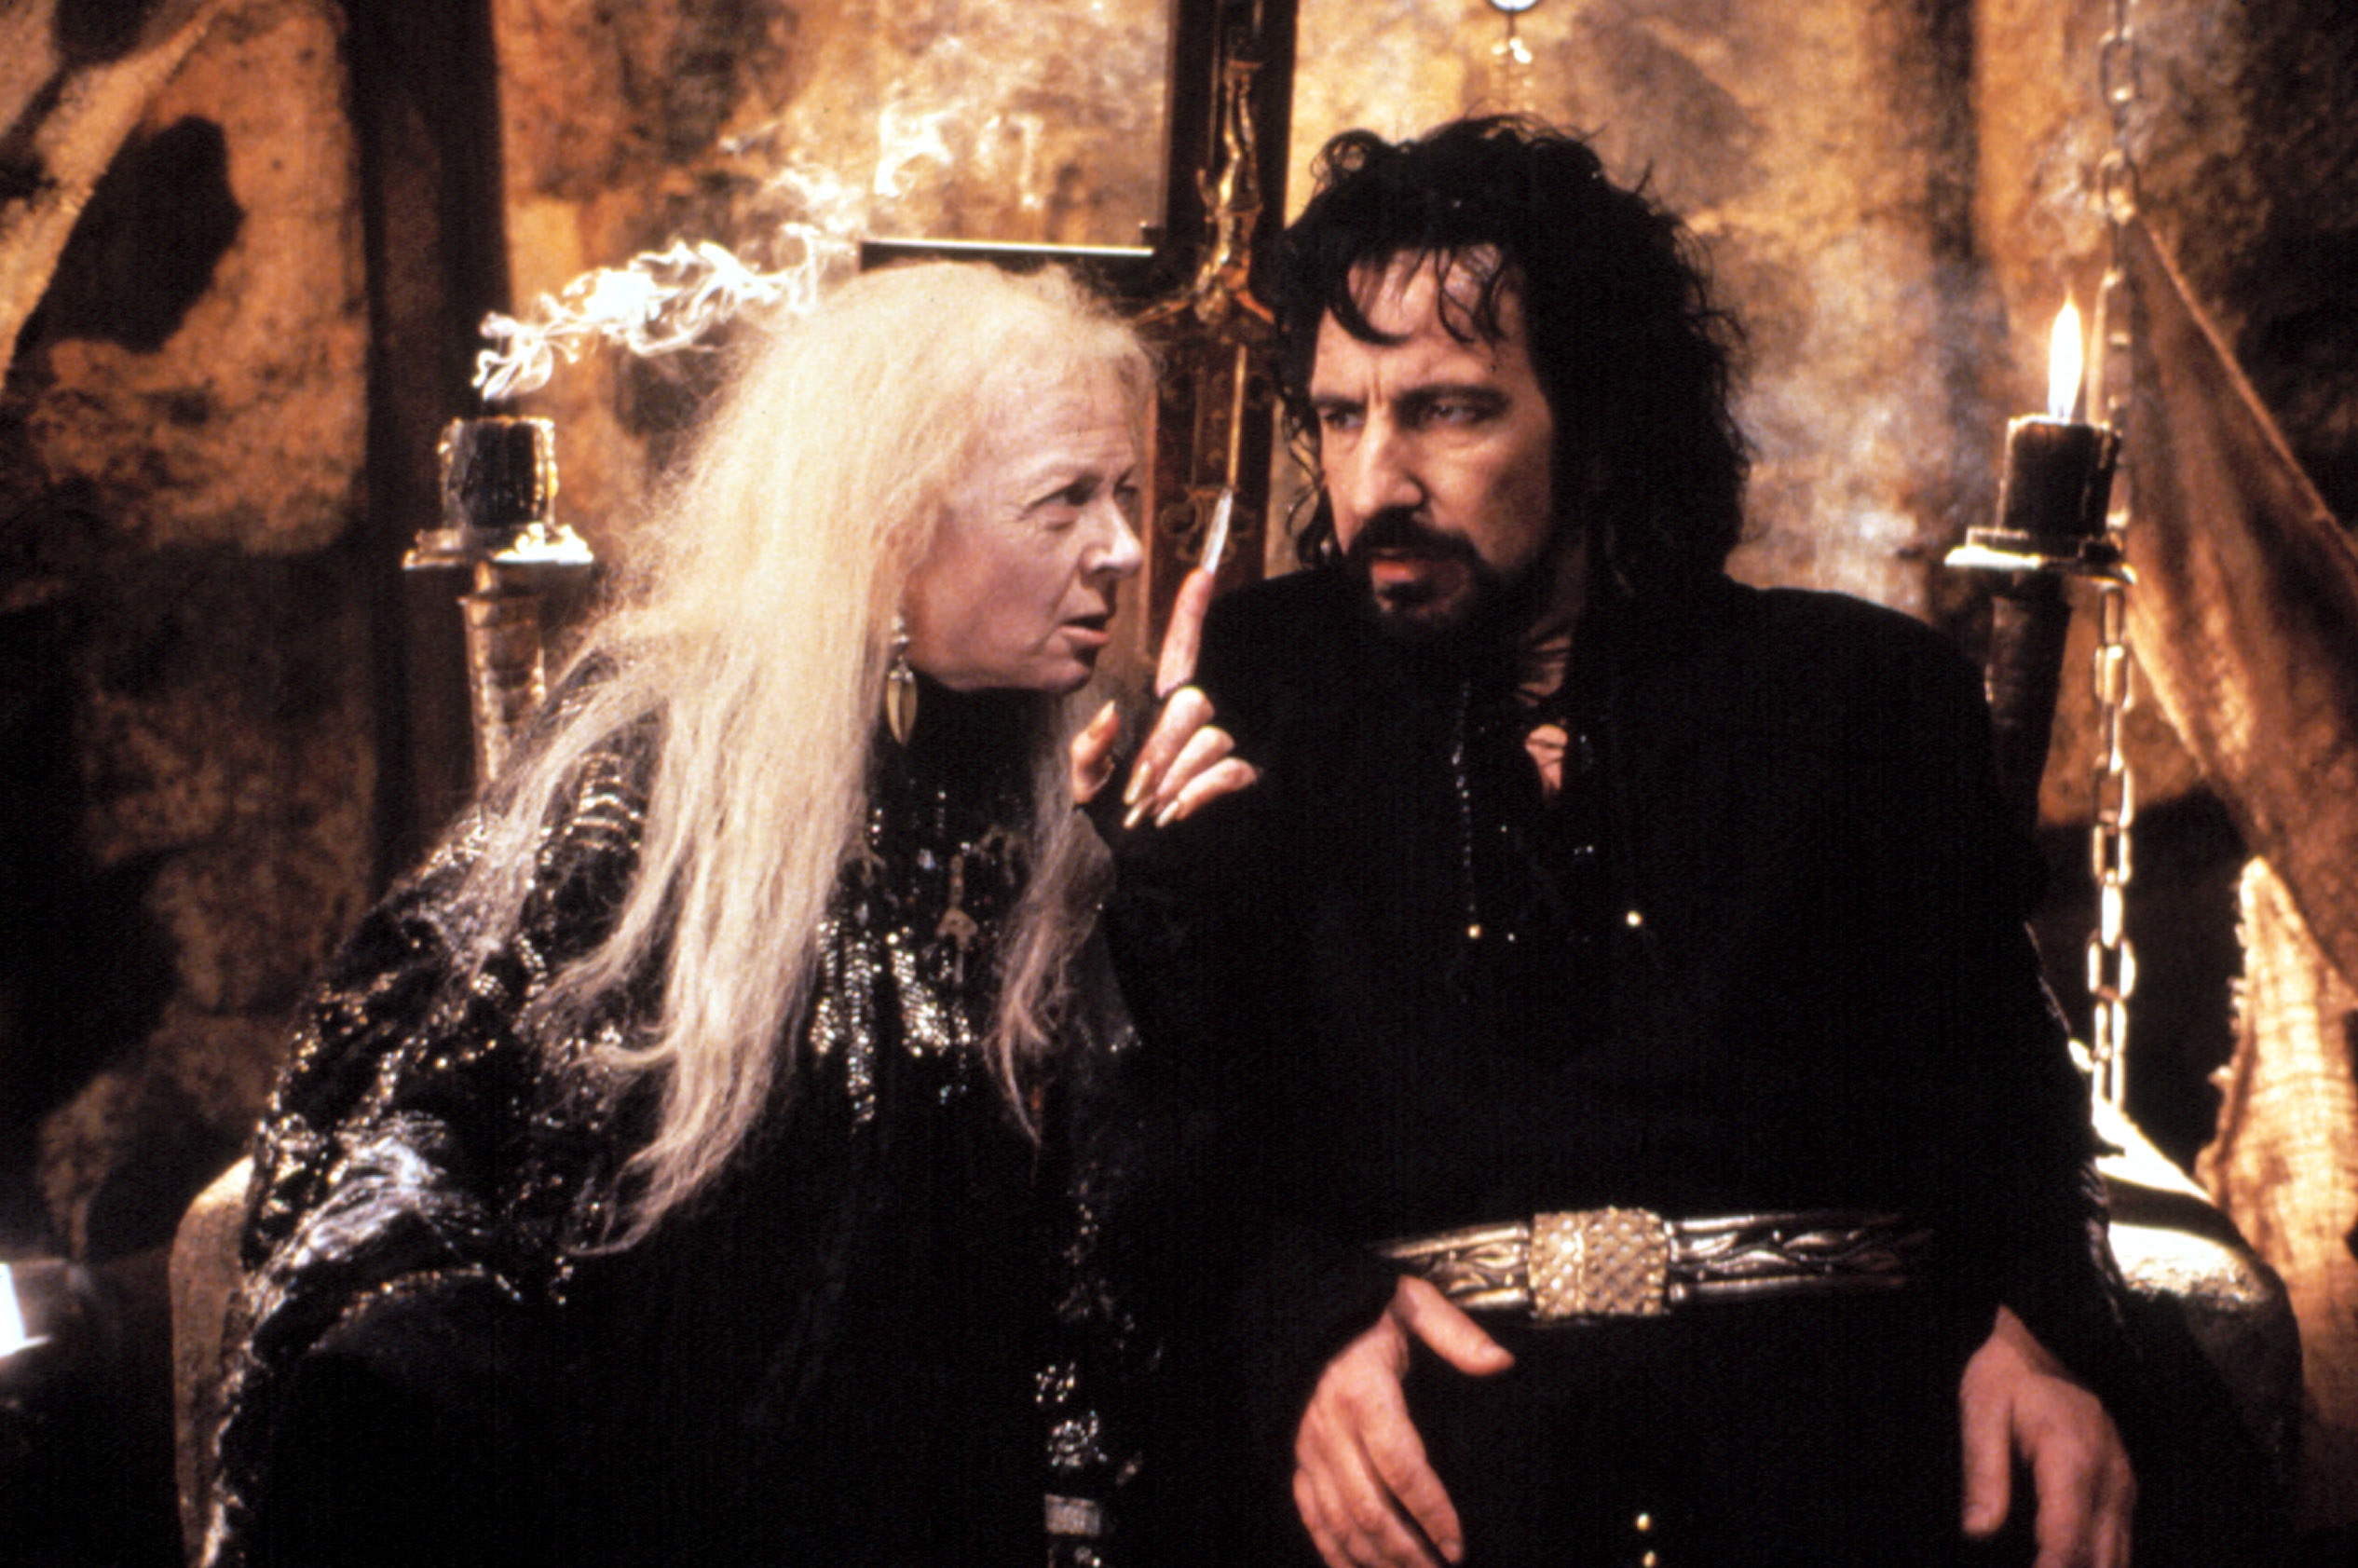 Mortianna pointing her finger at Sheriff of Nottingham while in the middle of an intense conversation